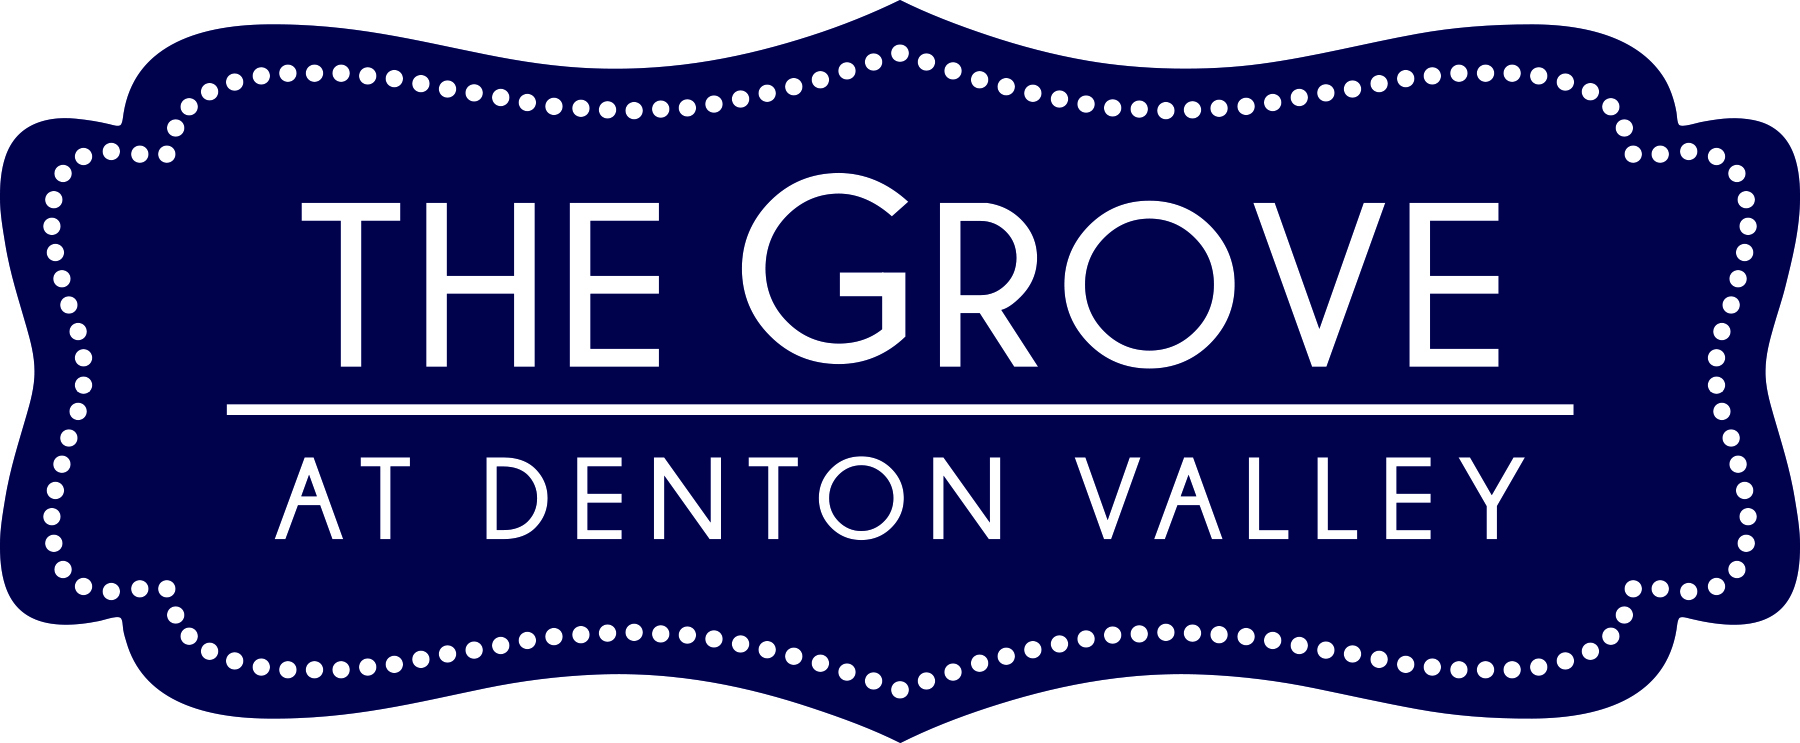 The-grove-at-denton-valley.jpg